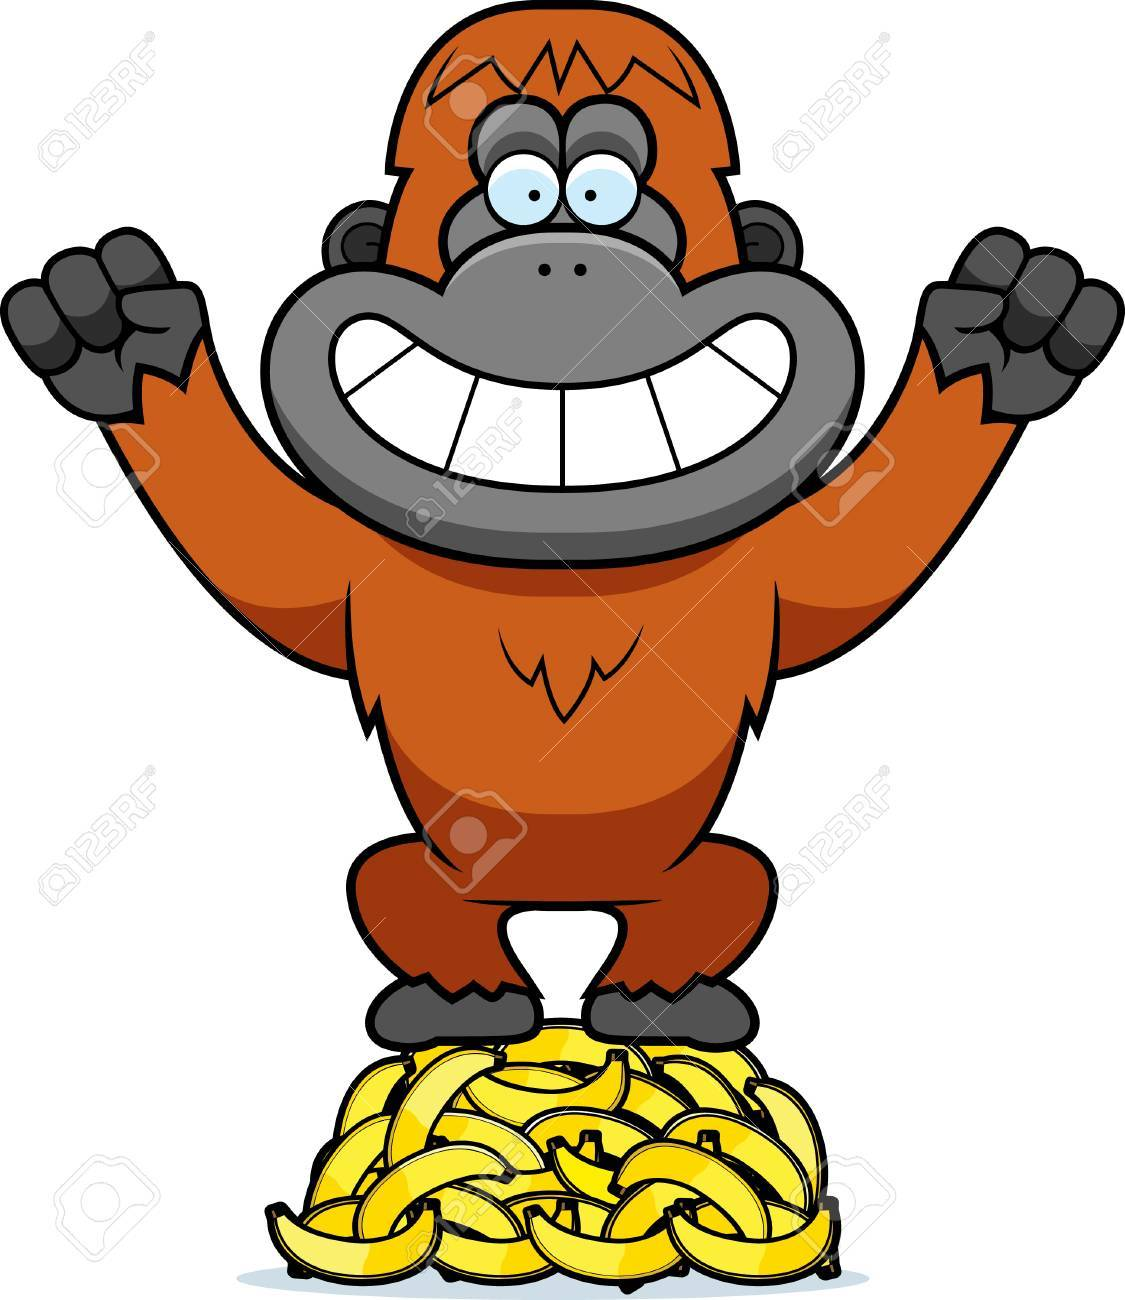 a cartoon illustration of an orangutan on a pile of bananas royalty rh 123rf com orangutan clipart free clipart orangutan hanging